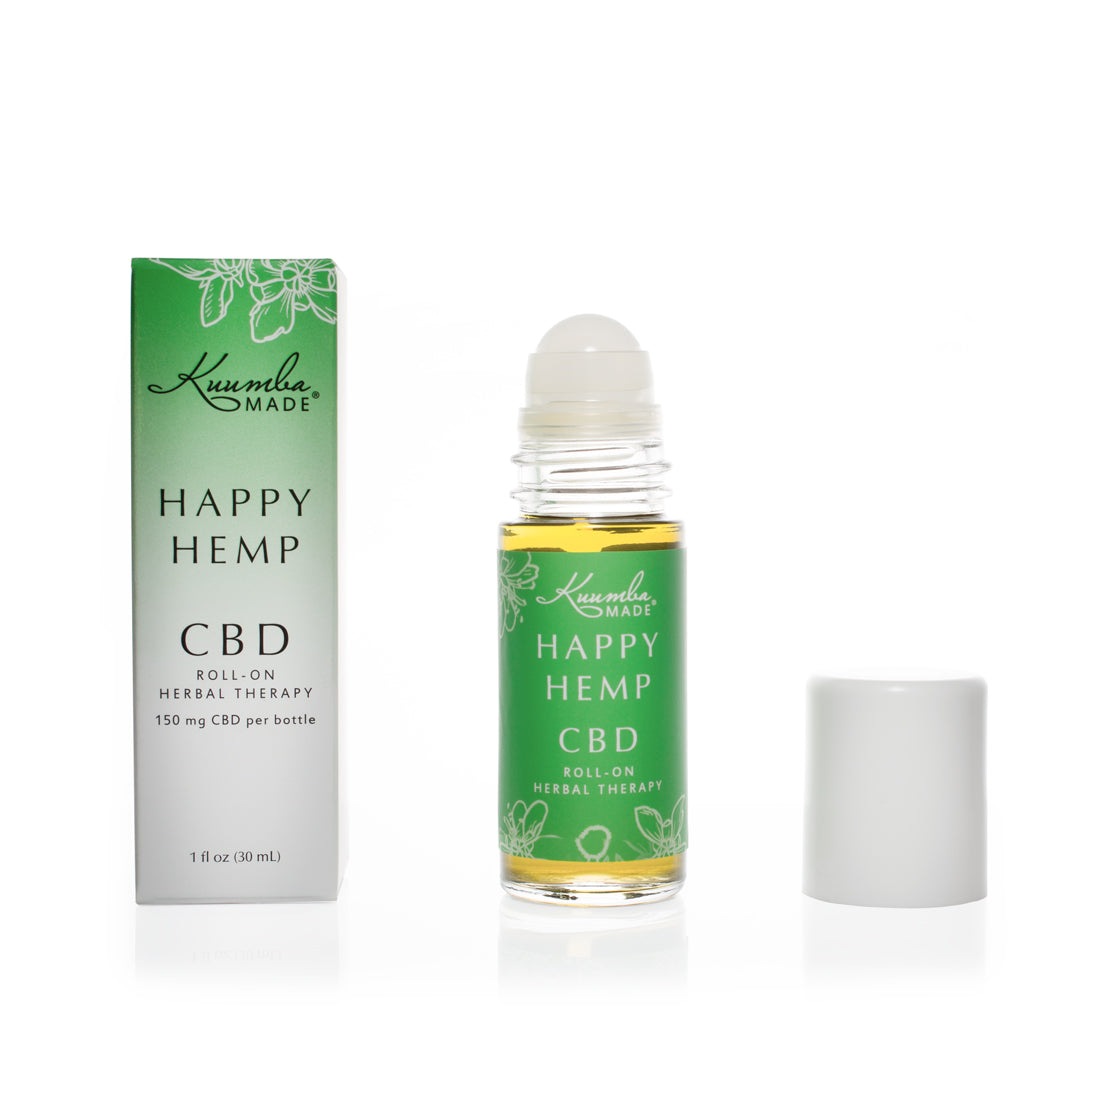 Happy Hemp Natural CBD 30ml Roll-On from Kuumba Made